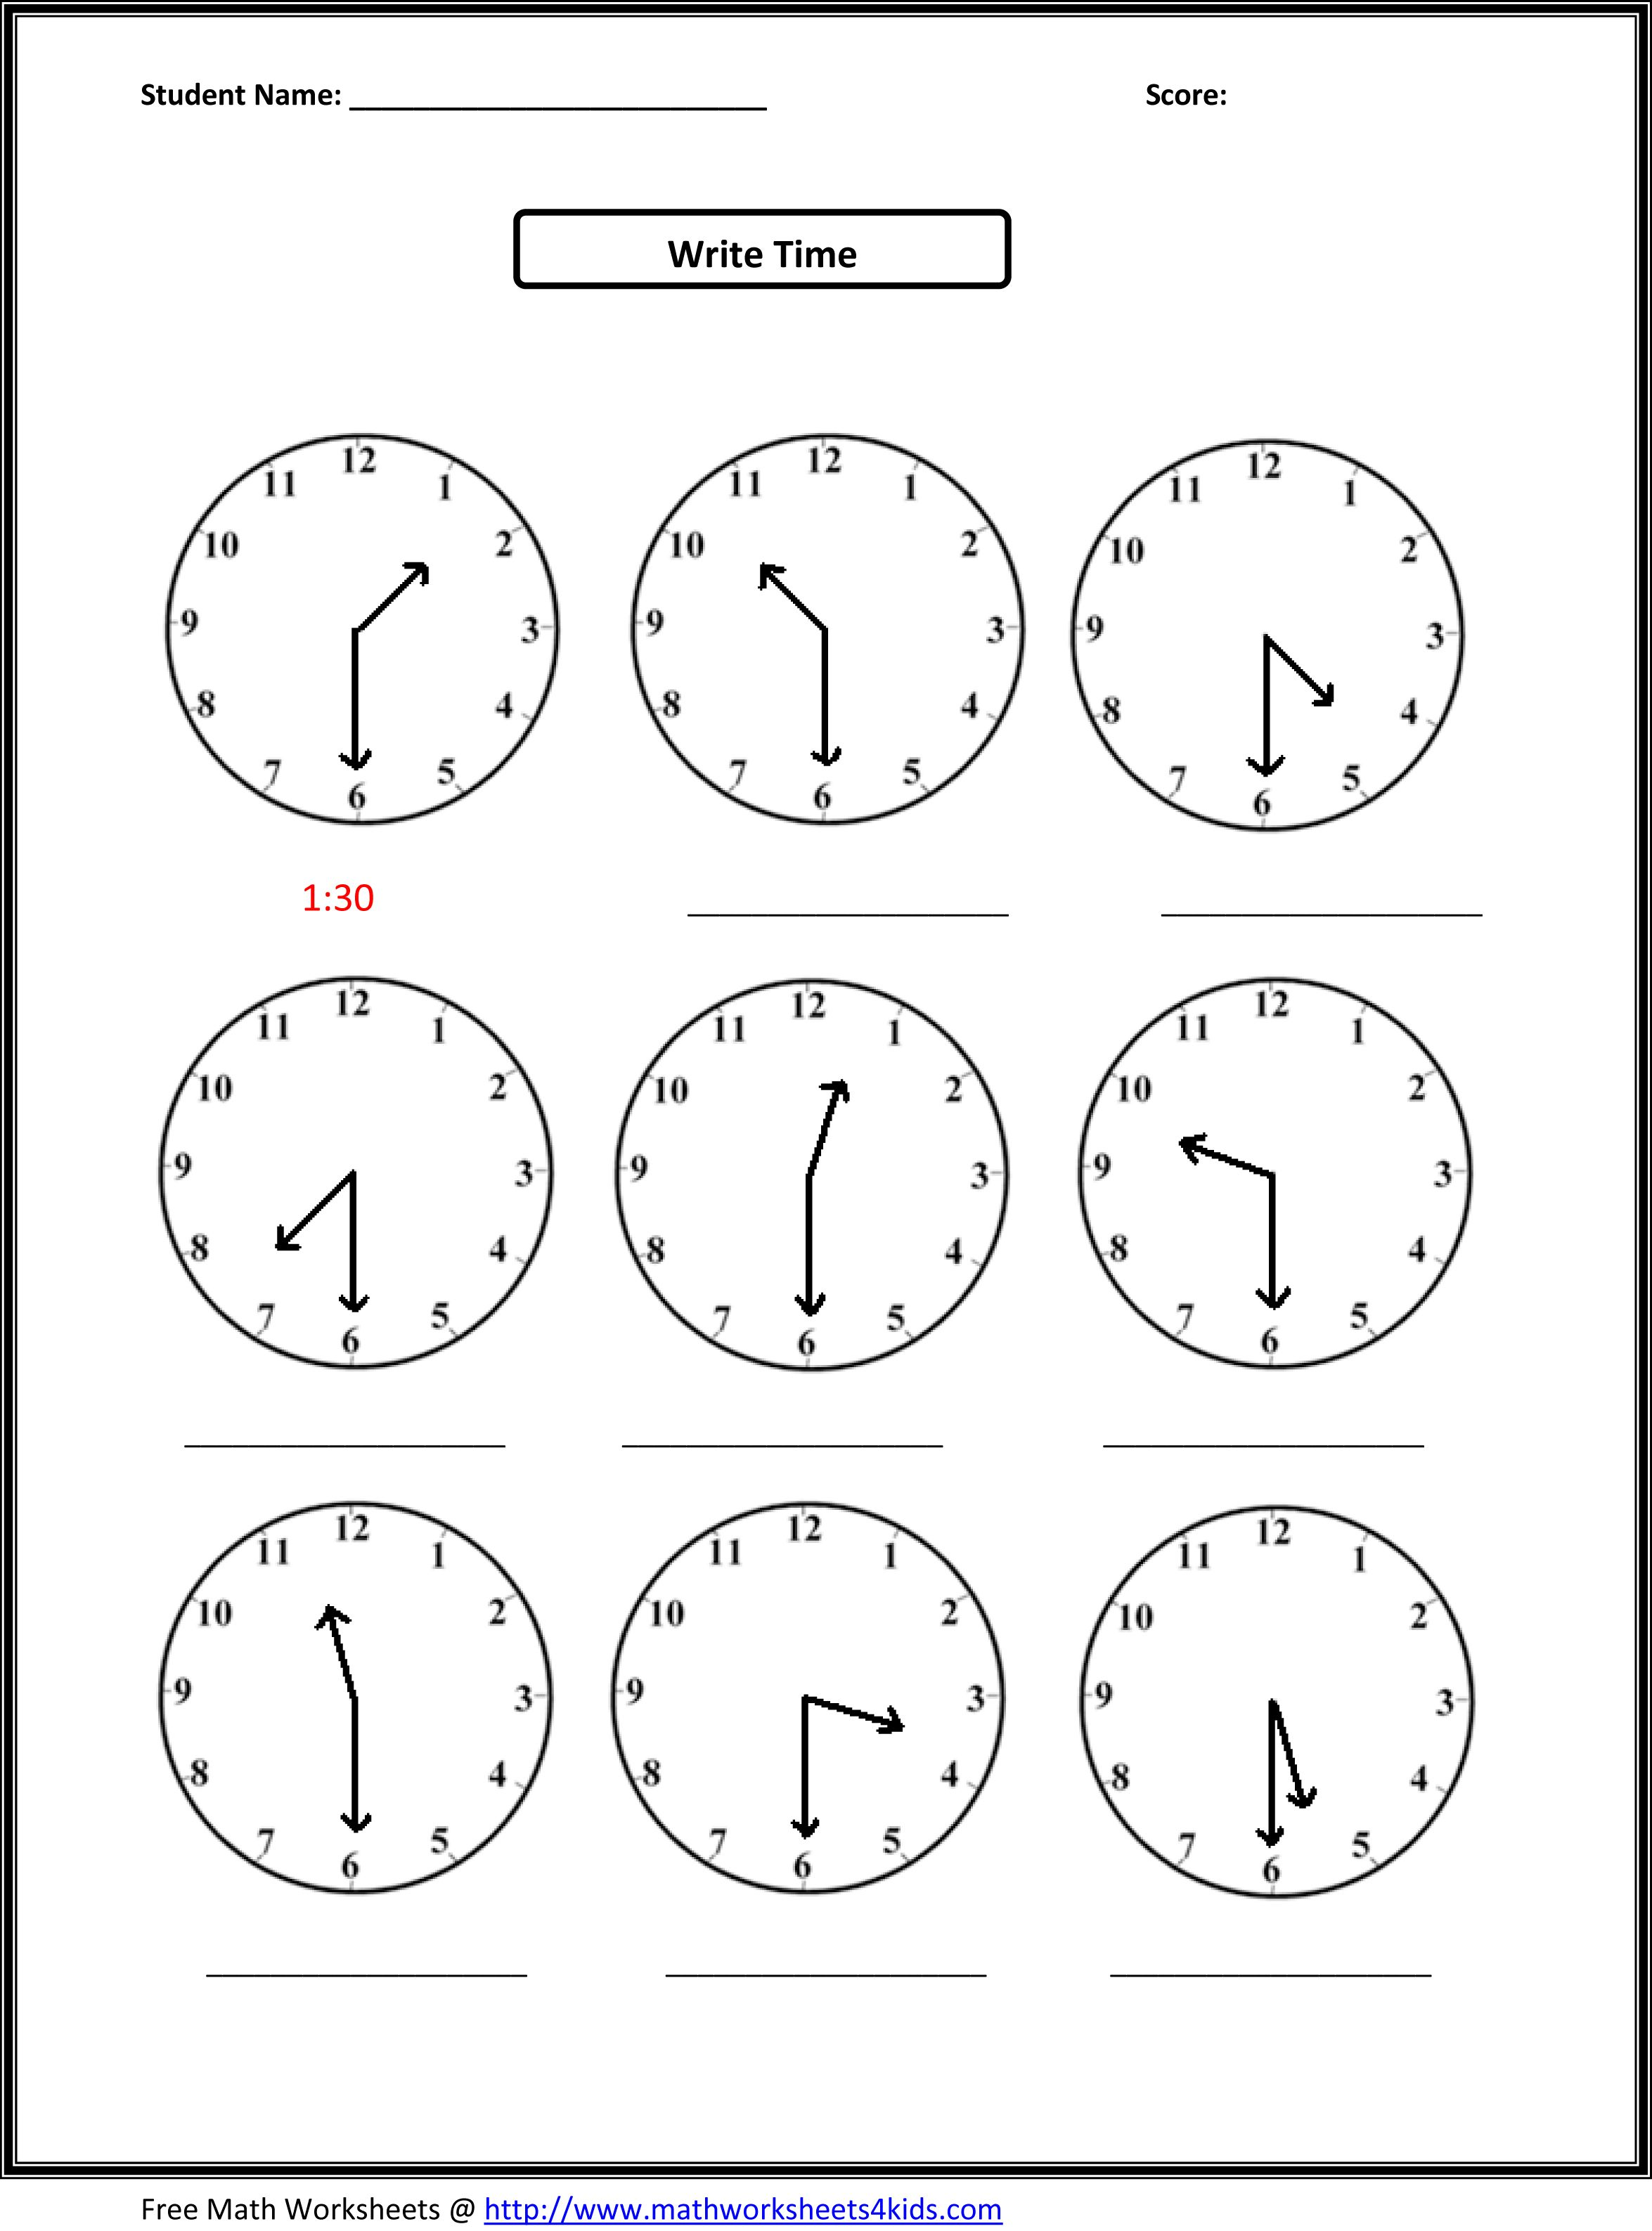 Proatmealus  Stunning Worksheet On Time For Grade   Reocurent With Hot Free Printable Telling Time Worksheets Nd Grade  Reocurent With Nice Chemistry Chemical Equations Worksheet Also Easy Latitude And Longitude Worksheets In Addition Spanish Calendar Worksheet And Ocean Life Worksheets As Well As Tally Chart Worksheet Additionally John Adams Worksheets From Reocurentcom With Proatmealus  Hot Worksheet On Time For Grade   Reocurent With Nice Free Printable Telling Time Worksheets Nd Grade  Reocurent And Stunning Chemistry Chemical Equations Worksheet Also Easy Latitude And Longitude Worksheets In Addition Spanish Calendar Worksheet From Reocurentcom